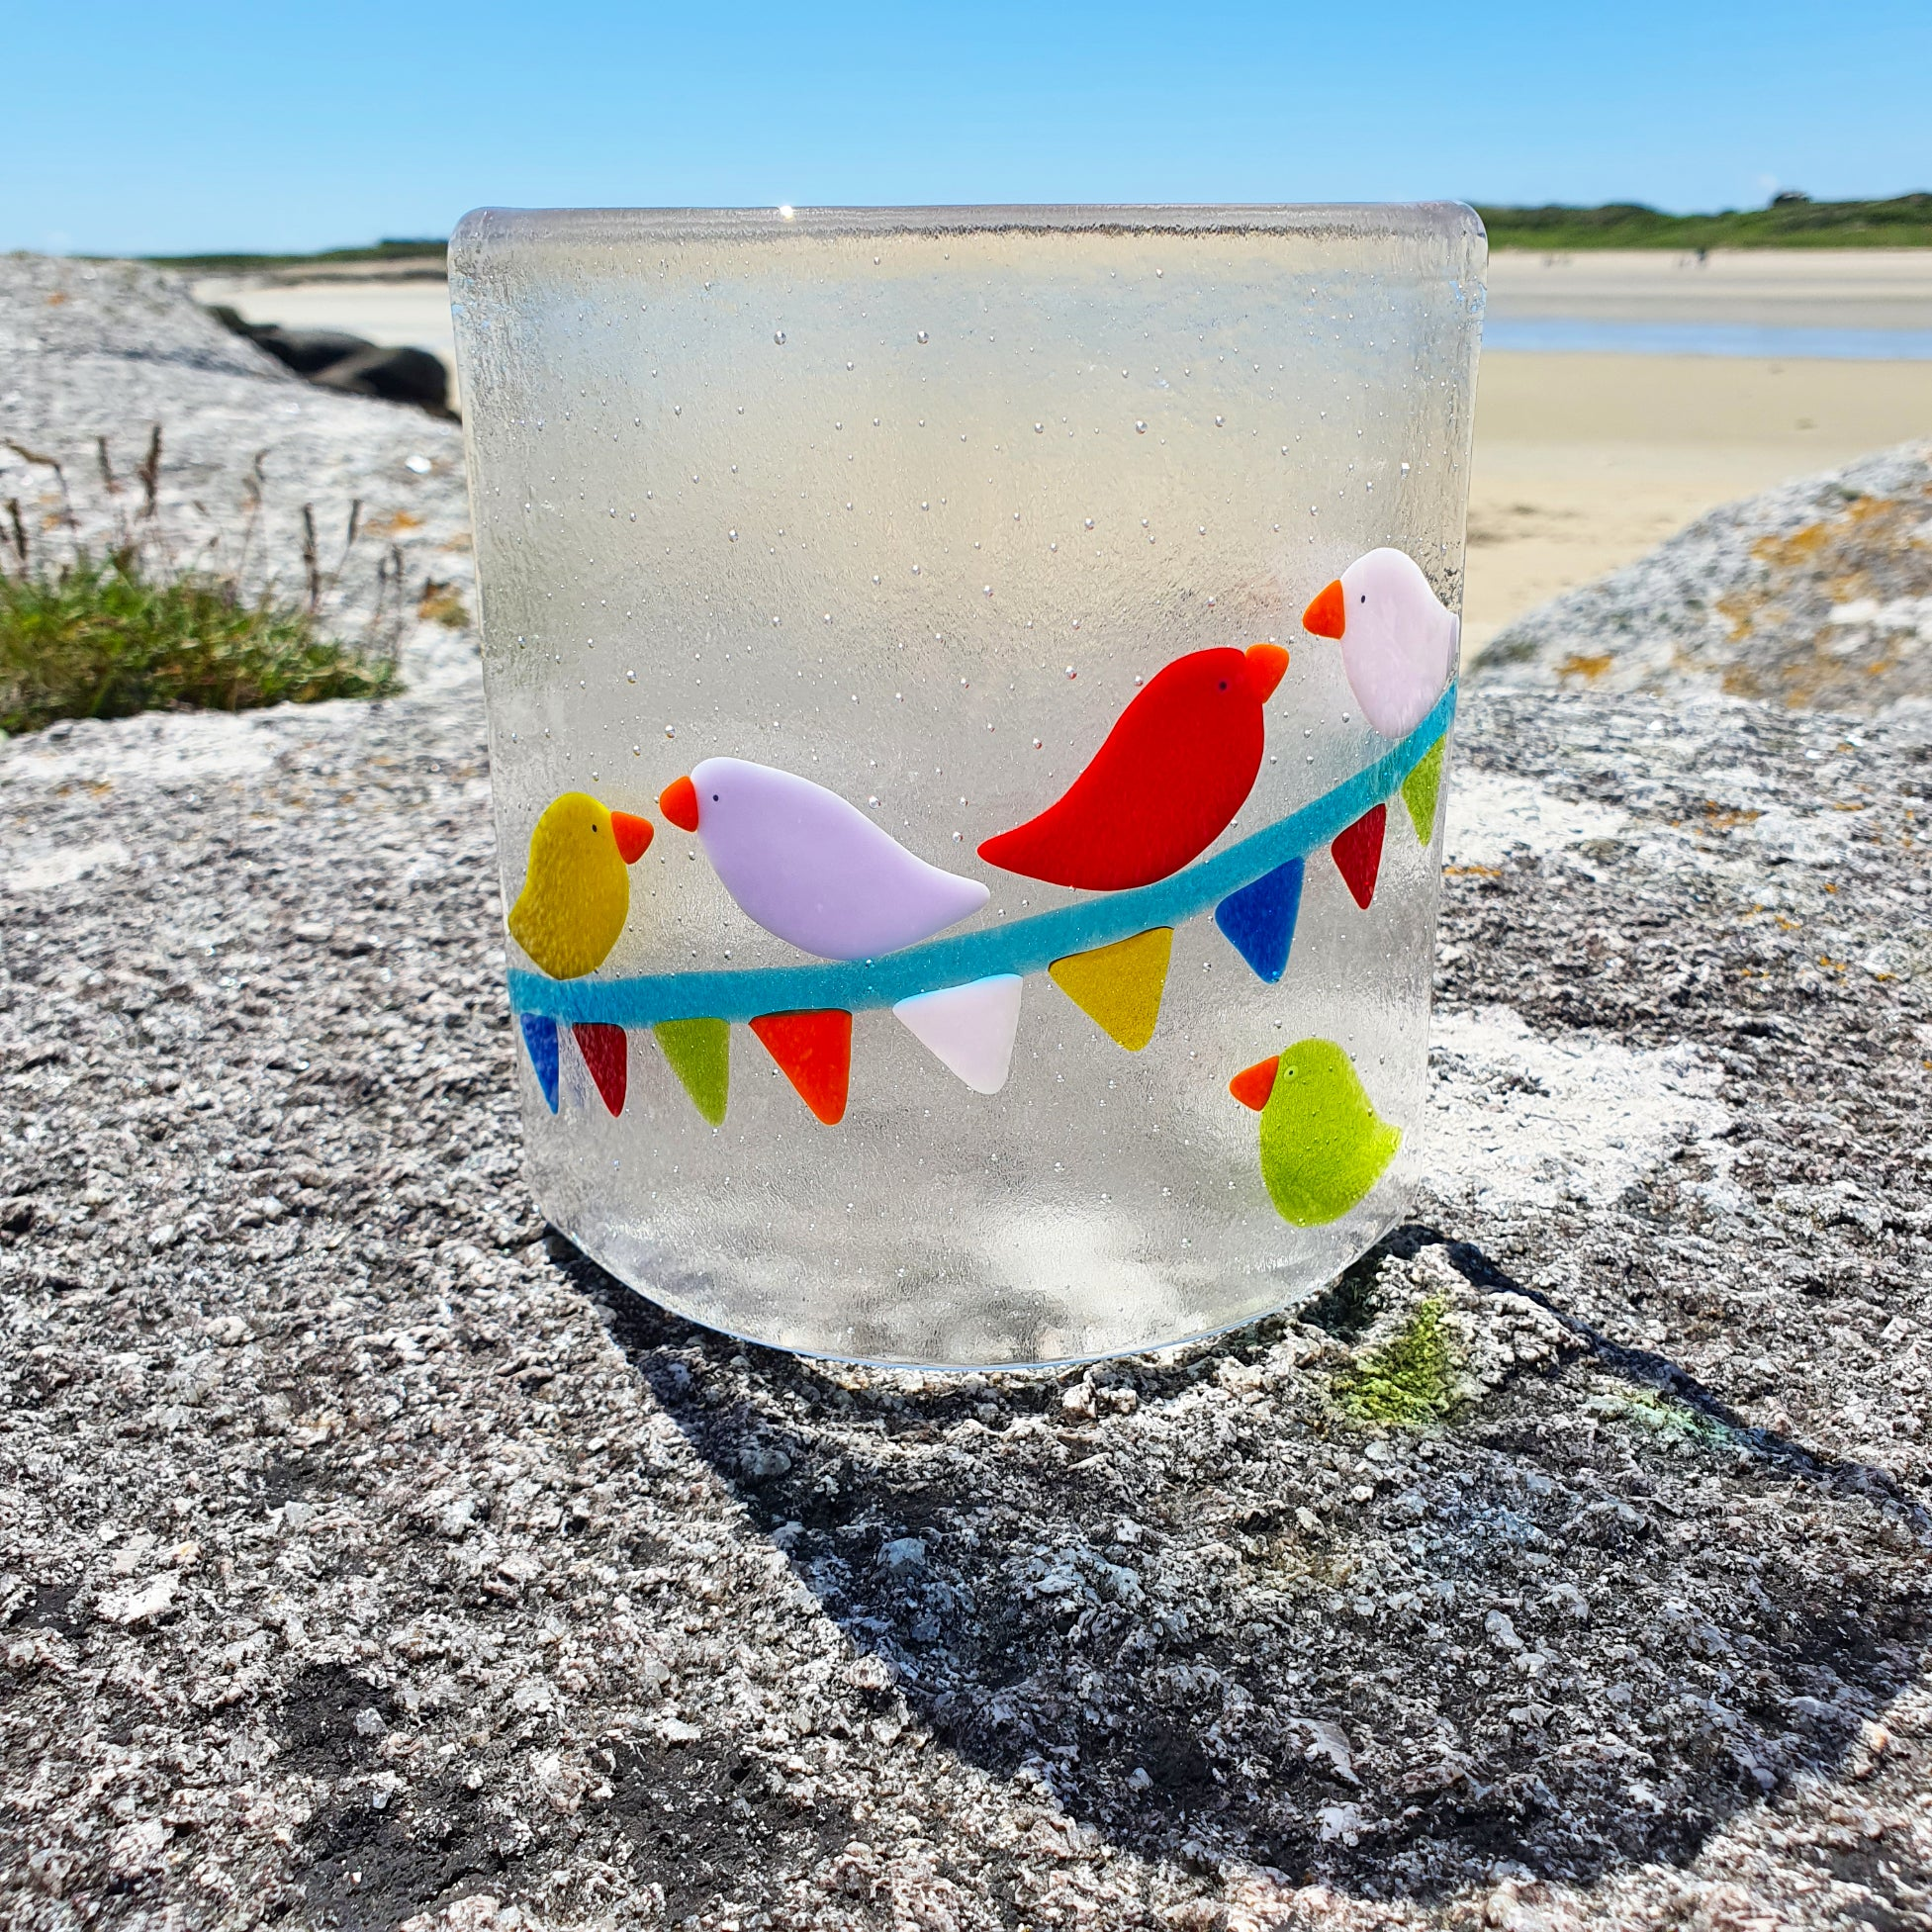 A fused glass candle shield featuring brightly coloured birds perched on carnival bunting. Made by Connemara Blue.